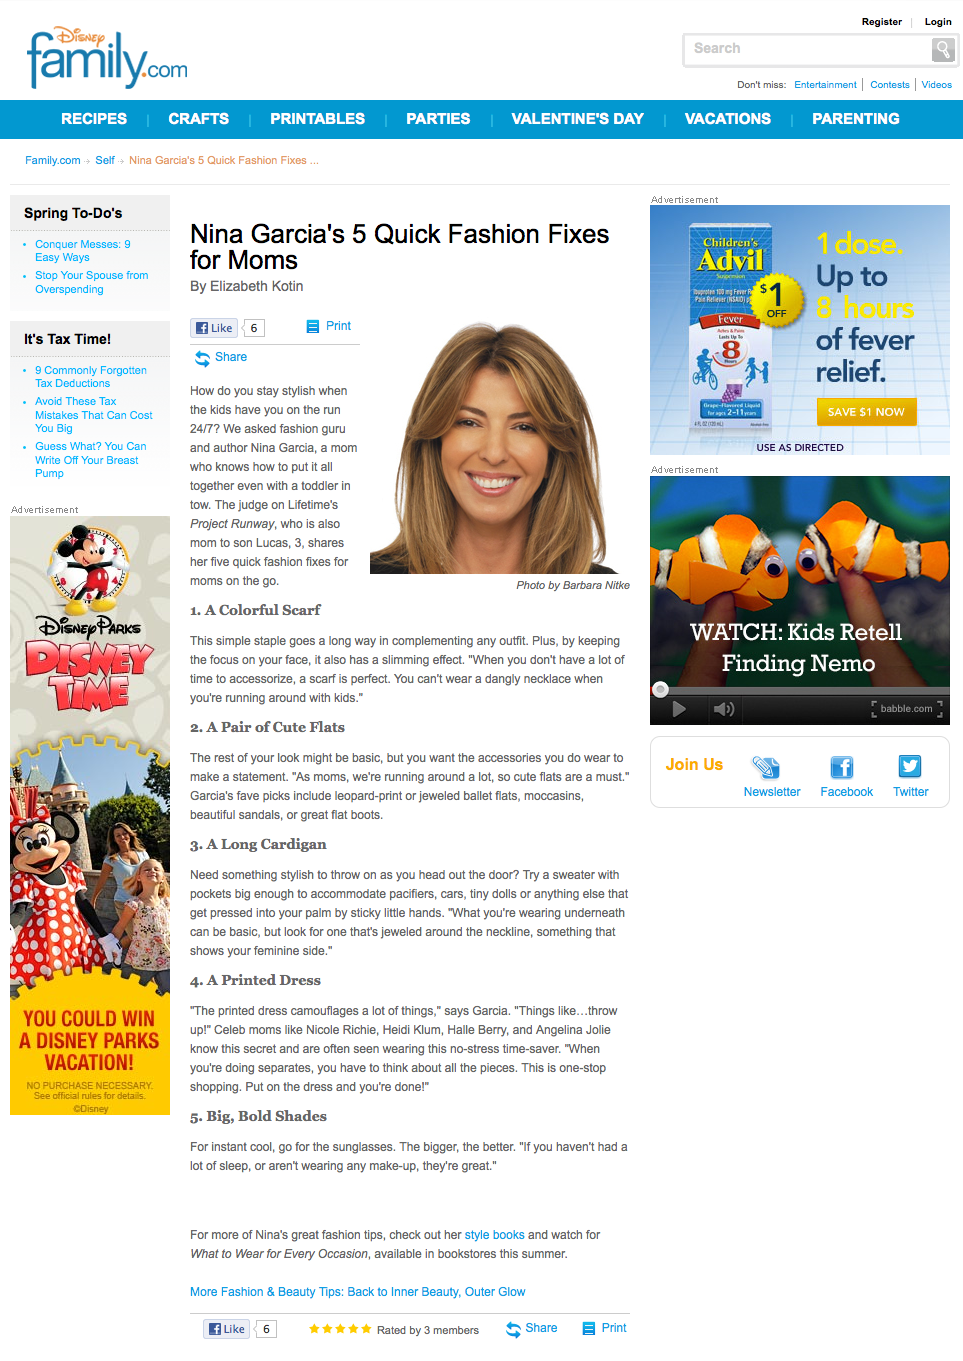 5 Quick Fashion Fixes for Moms _ Self _ Disney Family.com_1359331815393.png